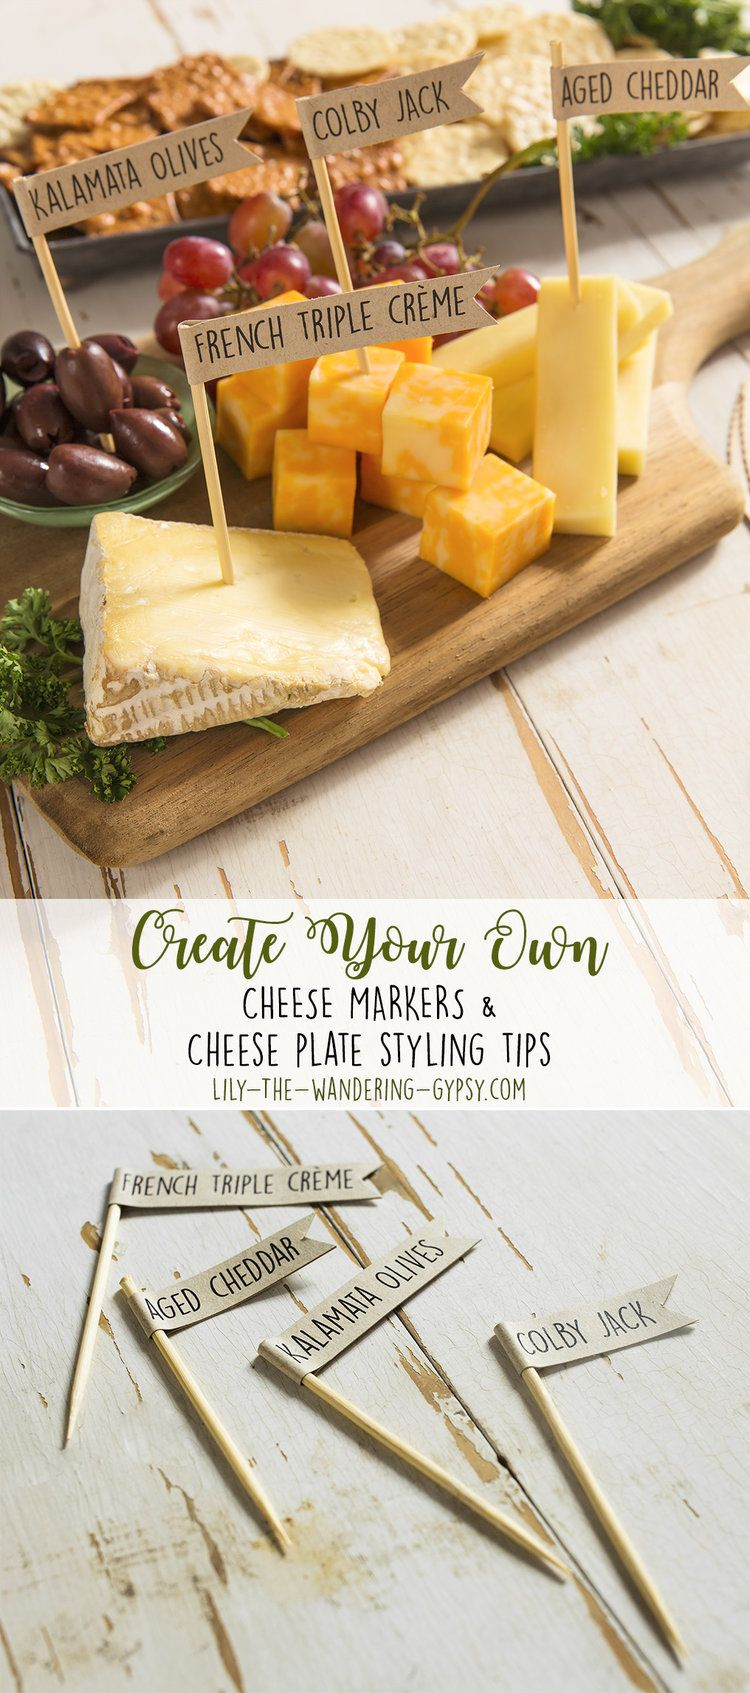 DIY Cheese Markers \u0026 Cheese Plate Styling Ideas & DIY Cheese Markers Styling A Cheese Plate \u0026 Yummy Fruit Bars by ...